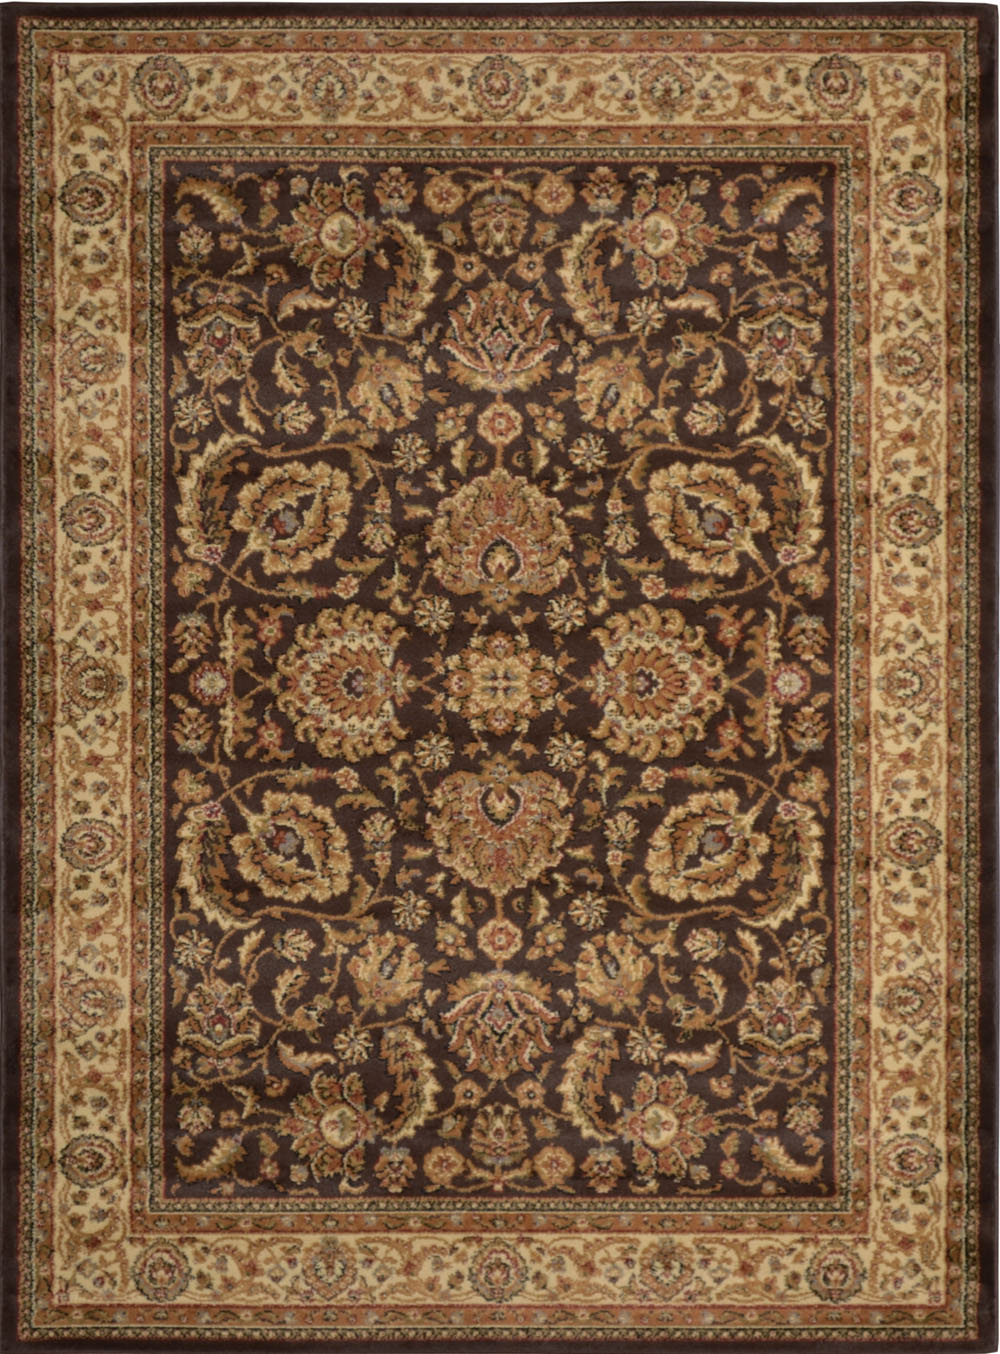 Brown Ivory Oriental Area Rug Persian Border Floral Leaves